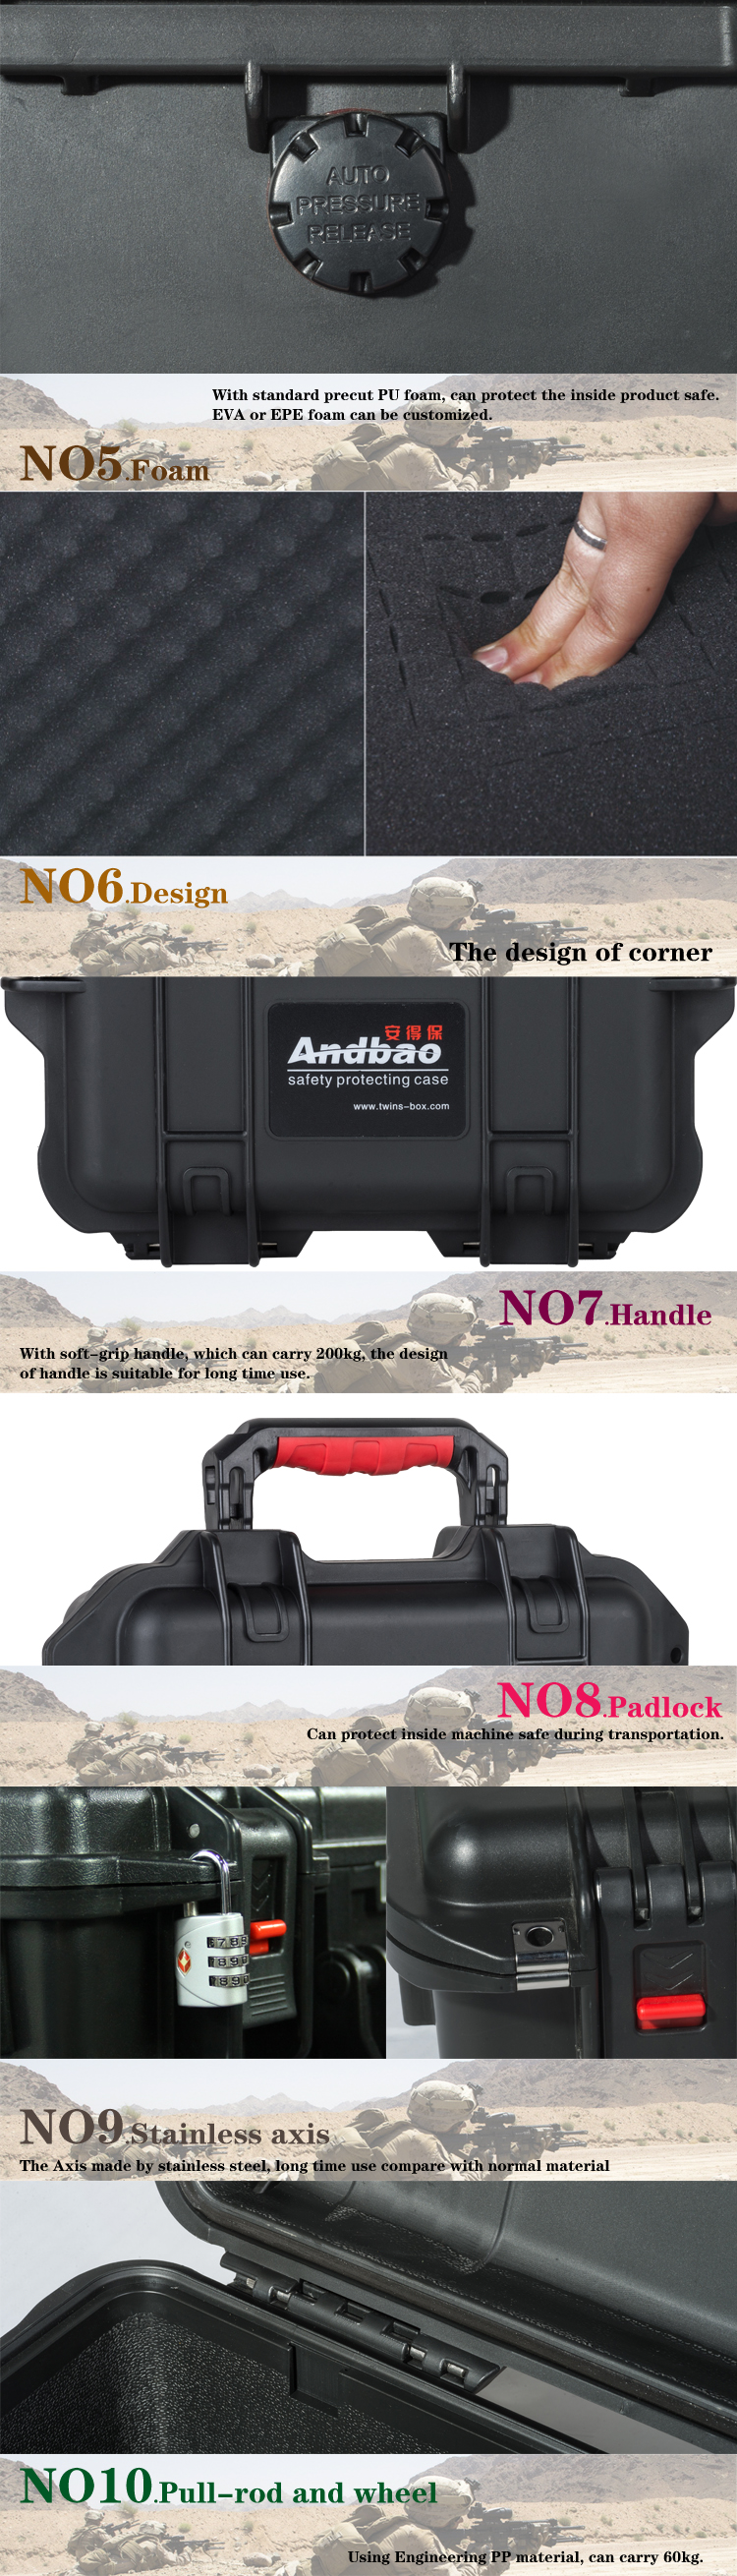 waterproof shockproof hard plastic rifle case